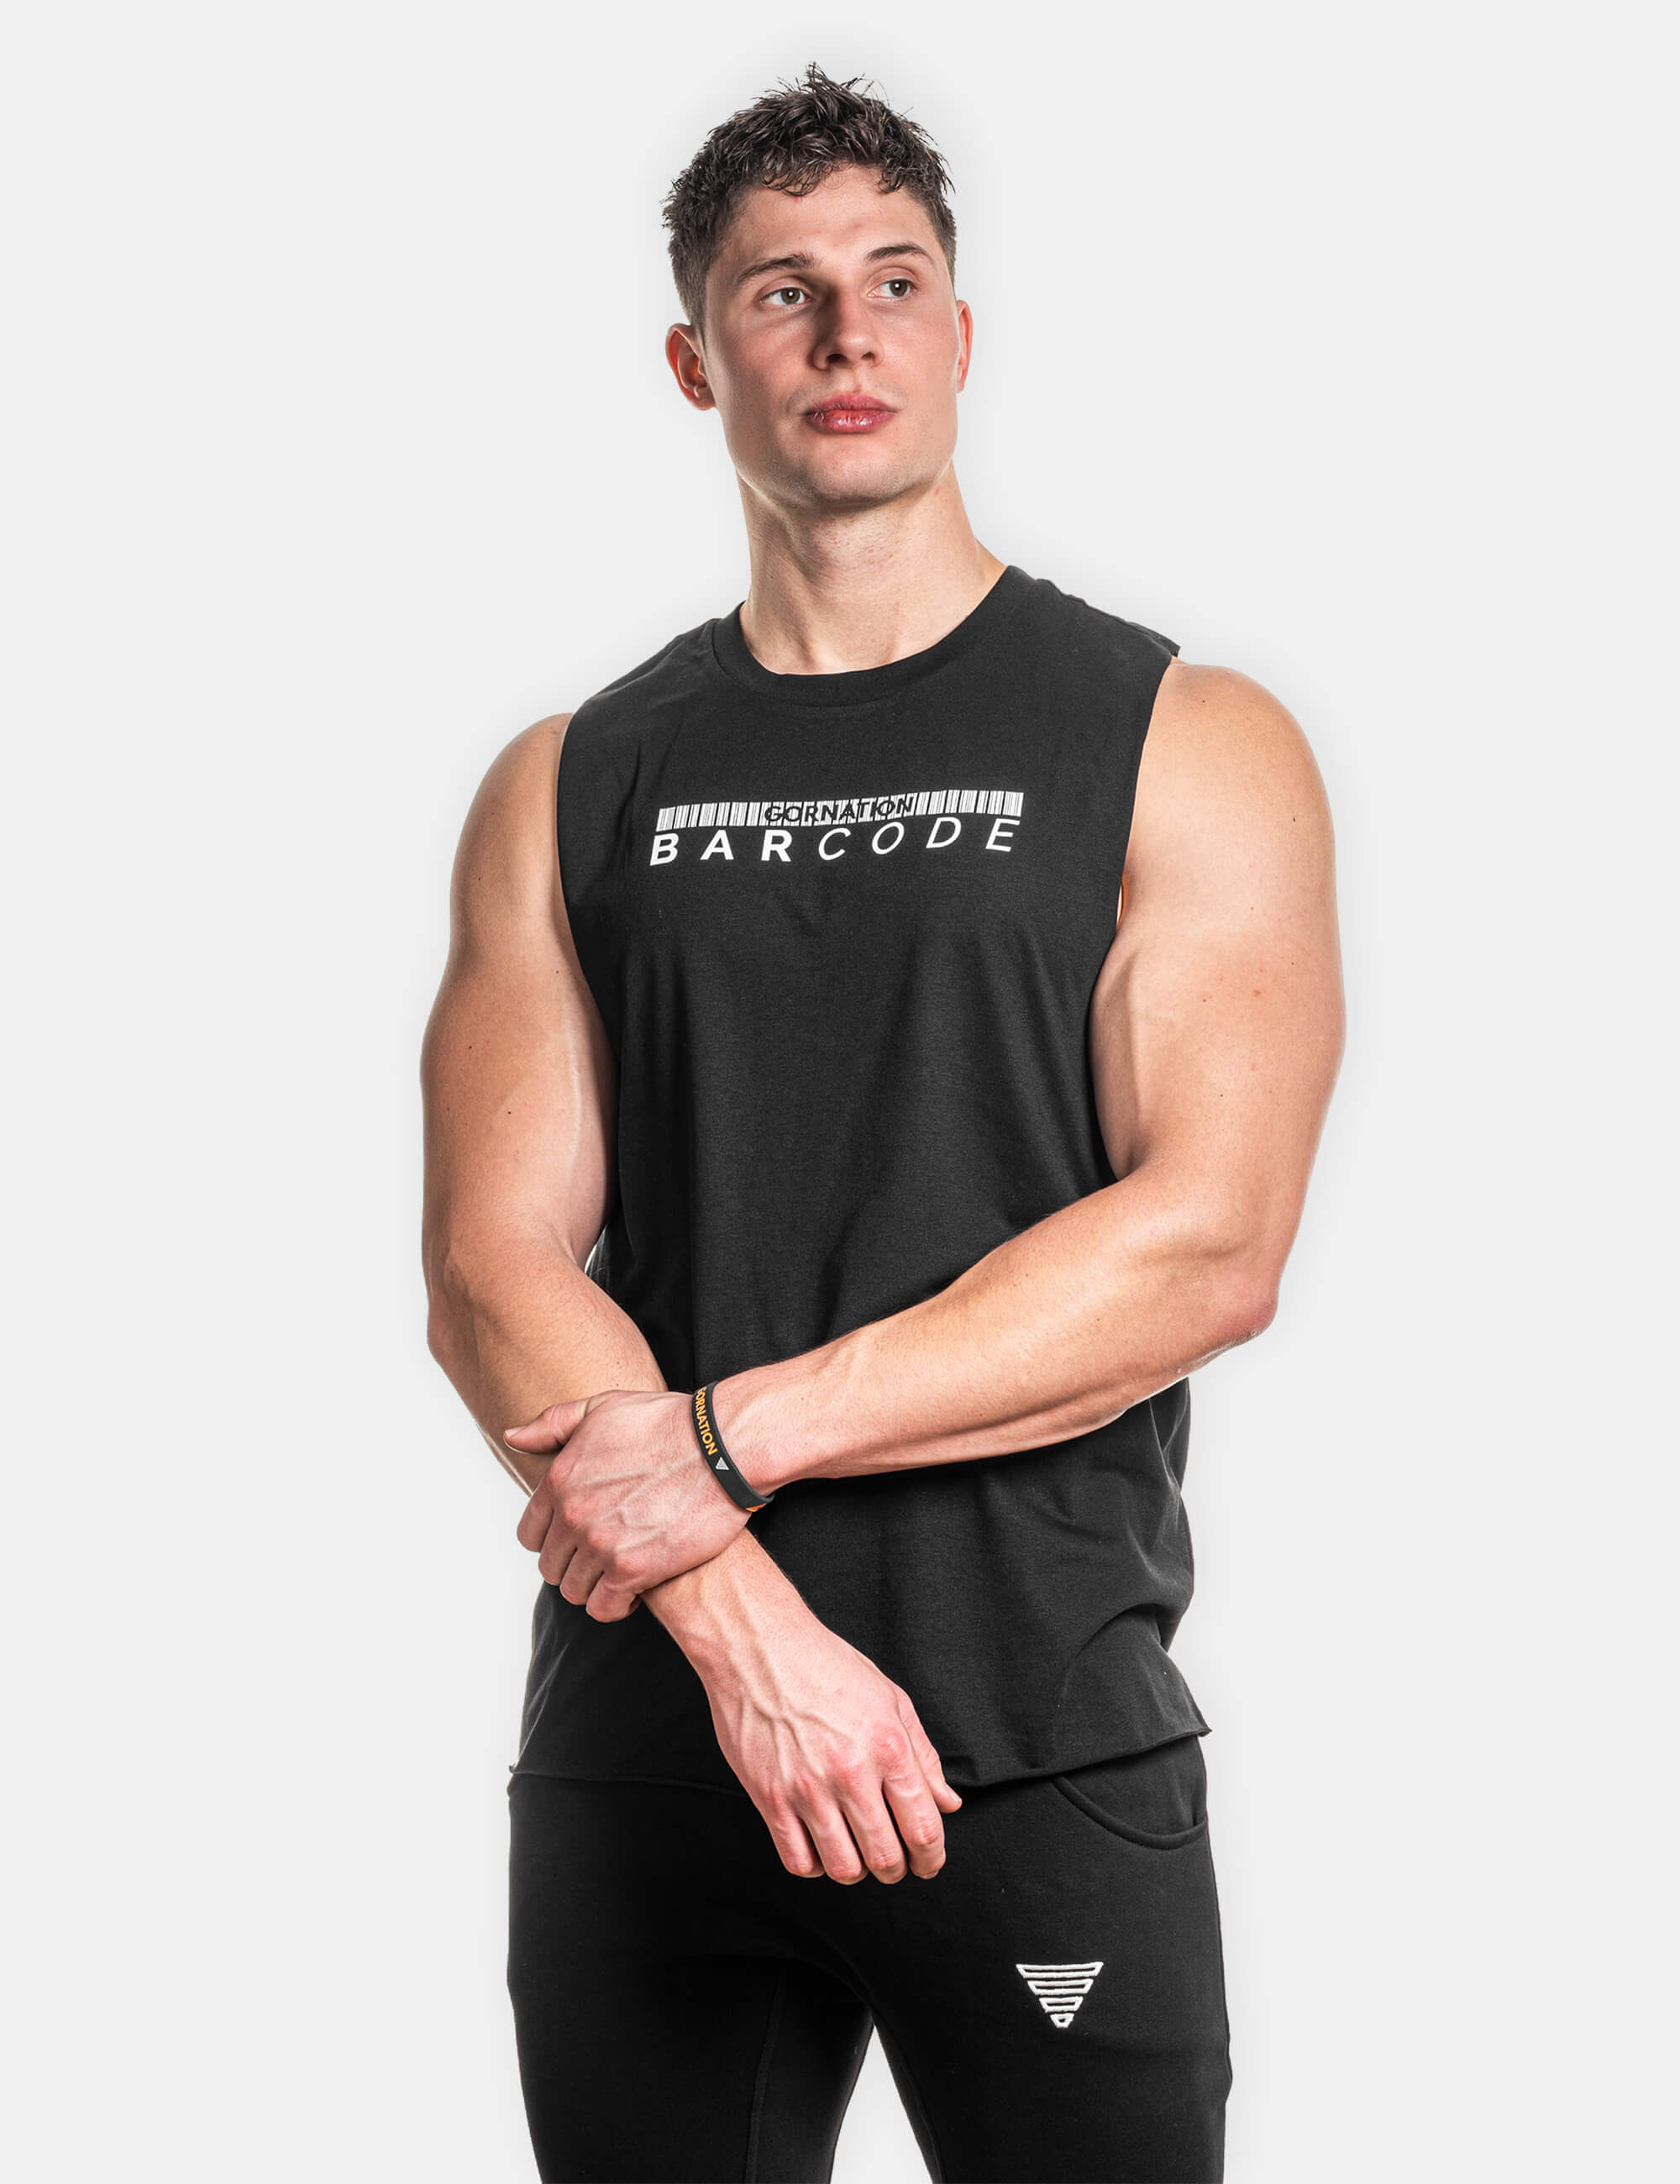 Man wearing loose tank top with the Barcode print. The view is from the front side.